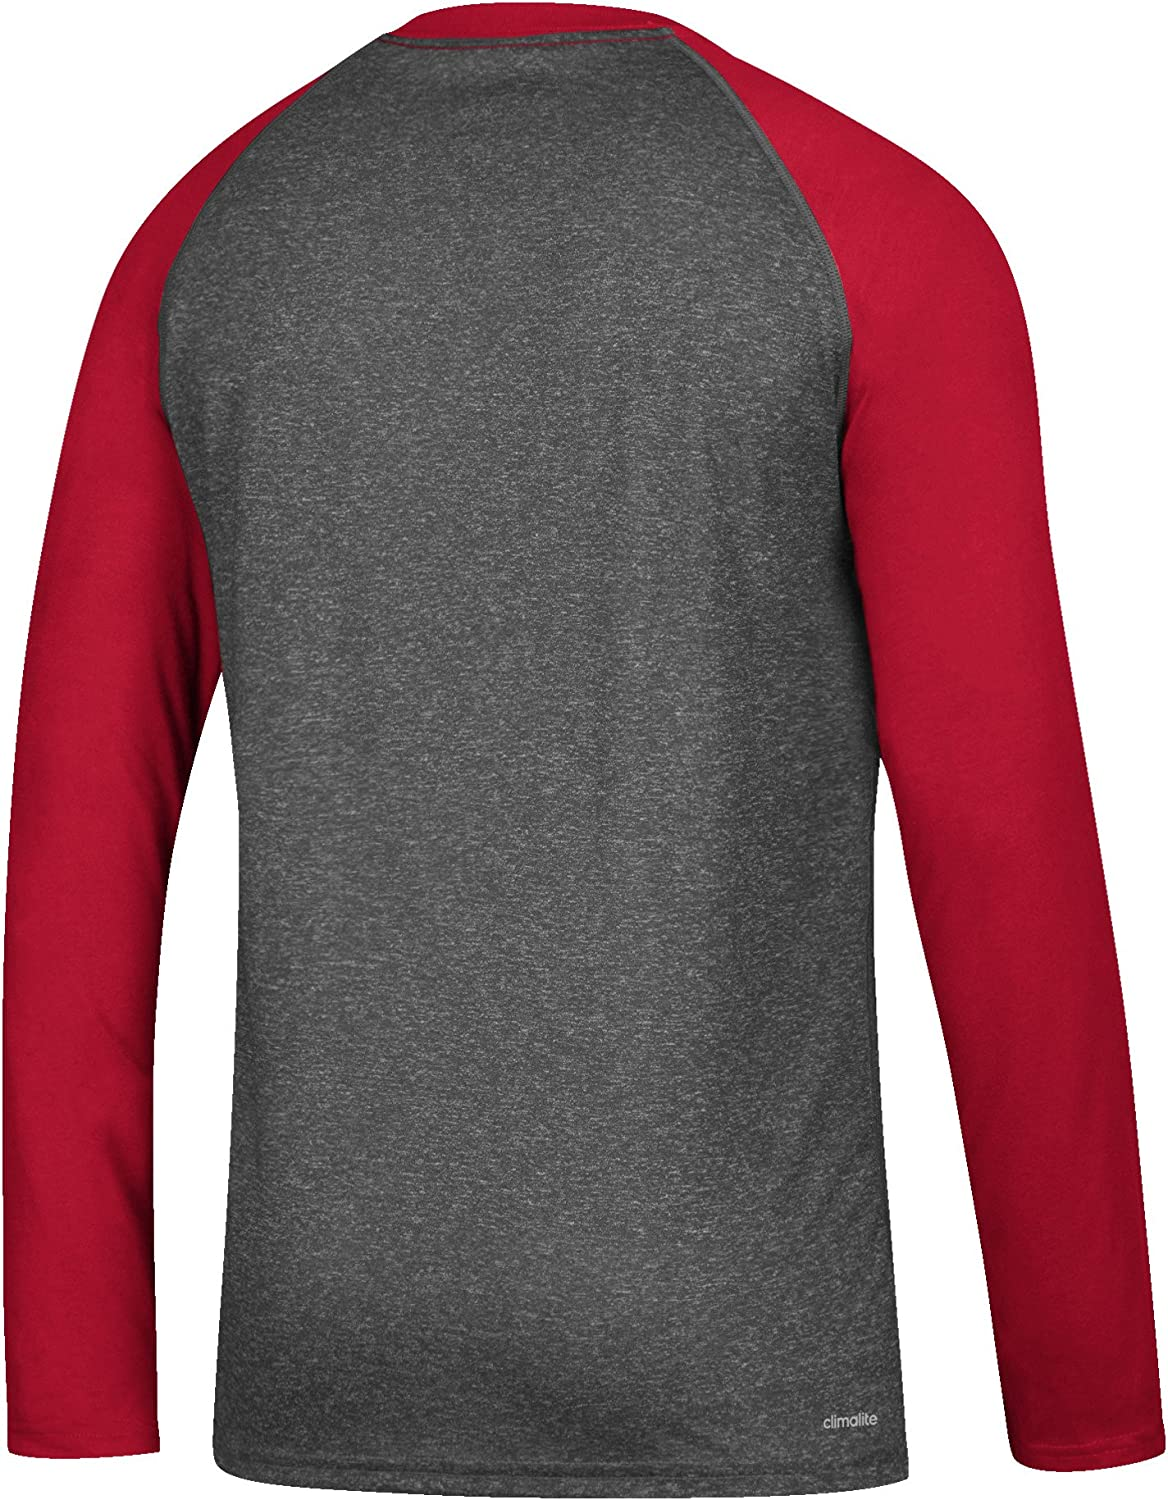 Large Dark Gray Heather NCAA Louisville Cardinals Mens Color Splat Ultimate L//S Raglan Teecolor Splat Ultimate L//S Raglan Tee